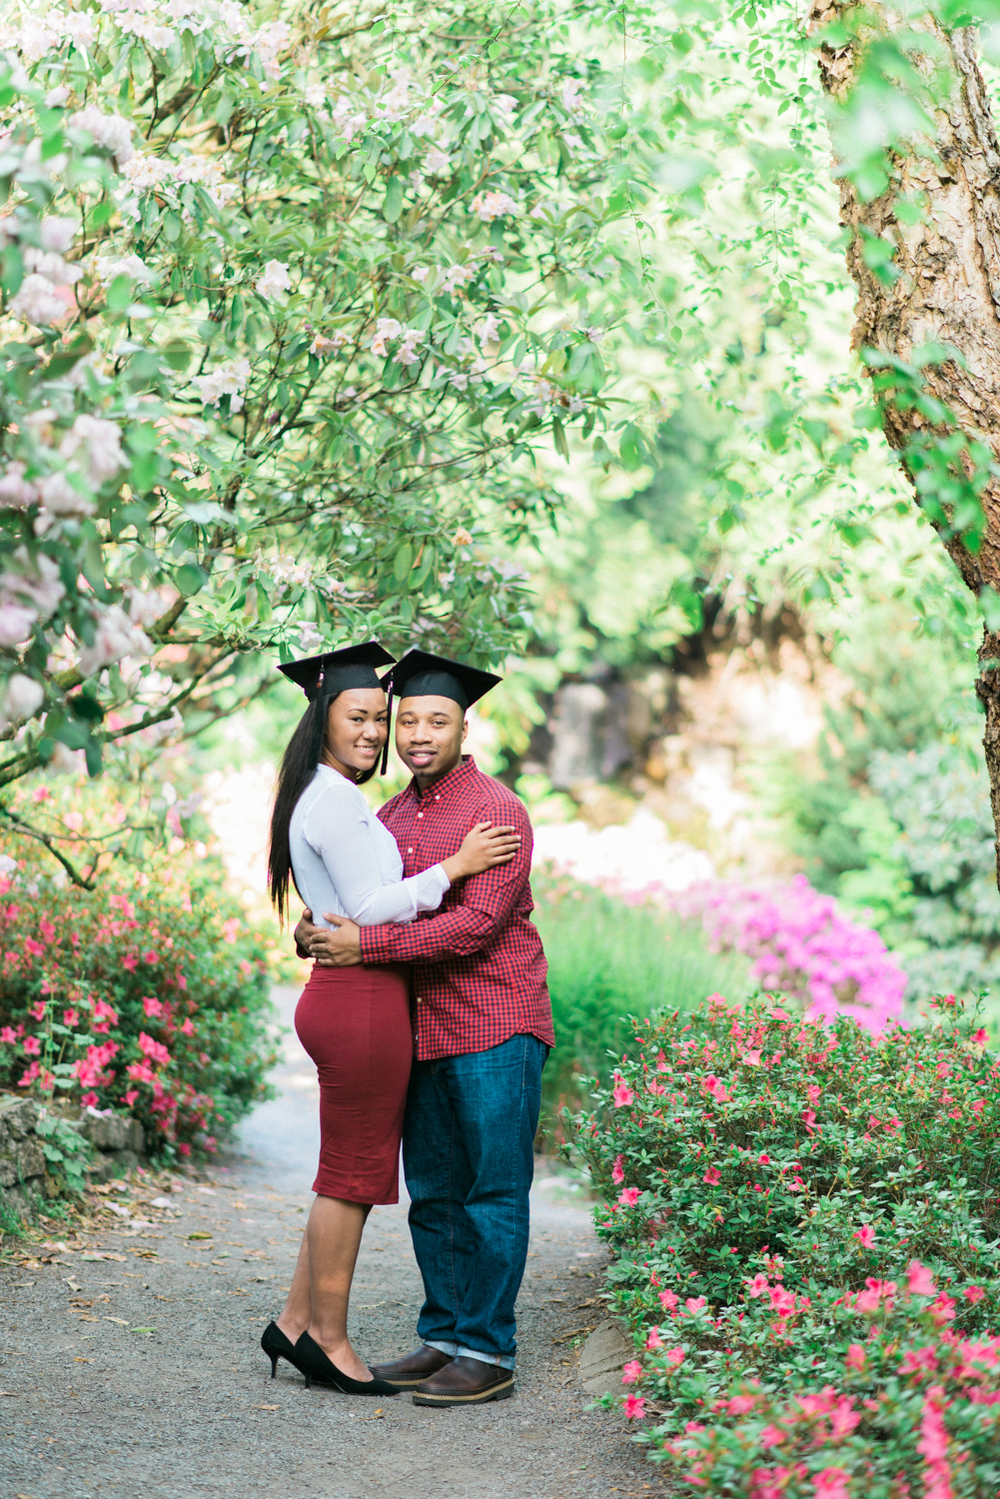 portland-engagement-photographer-wsu-graduation-portrait-crystal-springs-rhododendron-garden-shelley-marie-photo-1